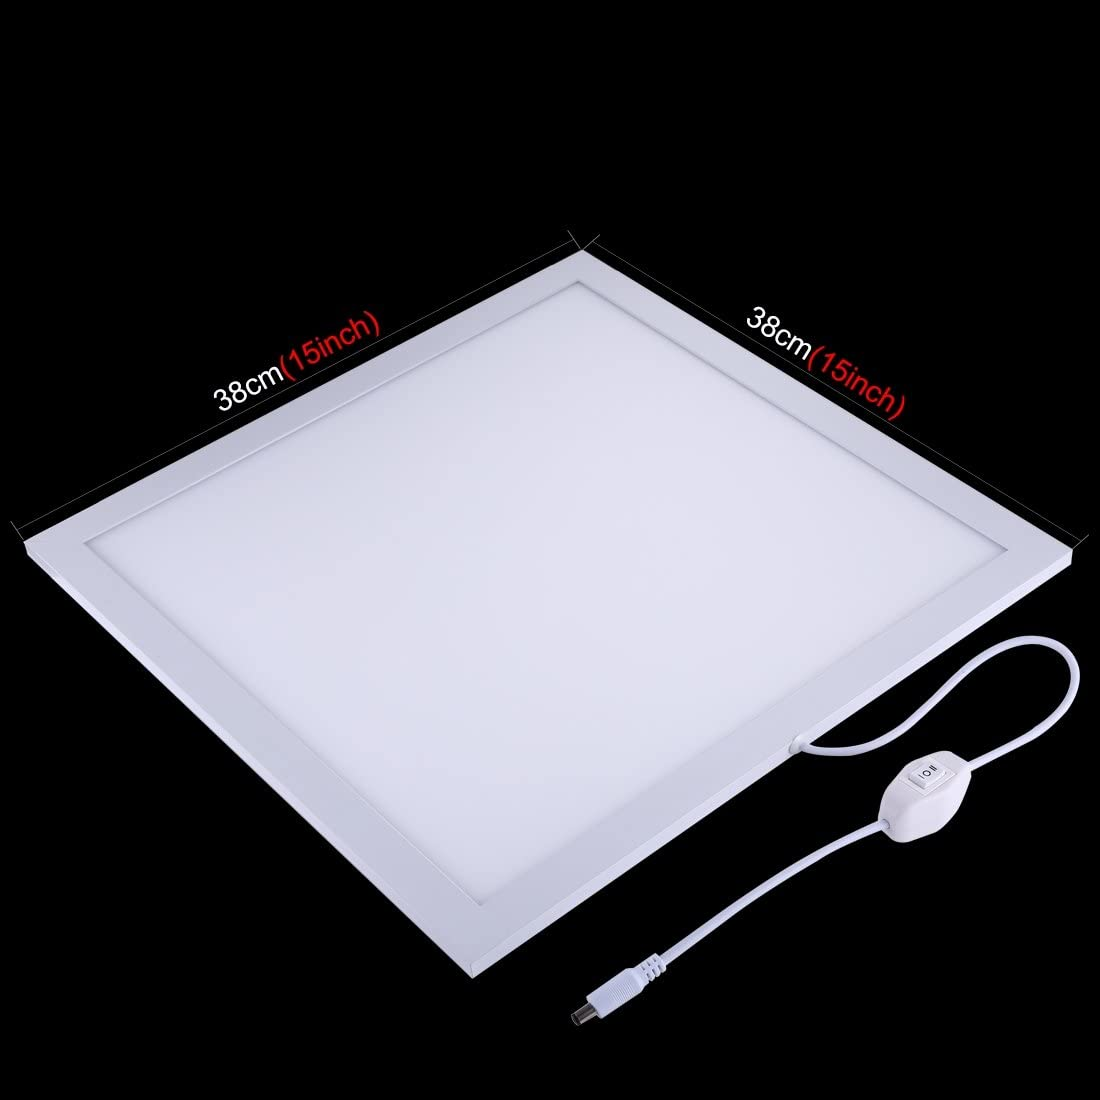 Color : Color4 Acrylic Material 34.7cm x 34.7cm Effective Area Durable CAOMING 1200LM LED Photography Shadowless Light Lamp Panel Pad with Switch No Polar Dimming Light